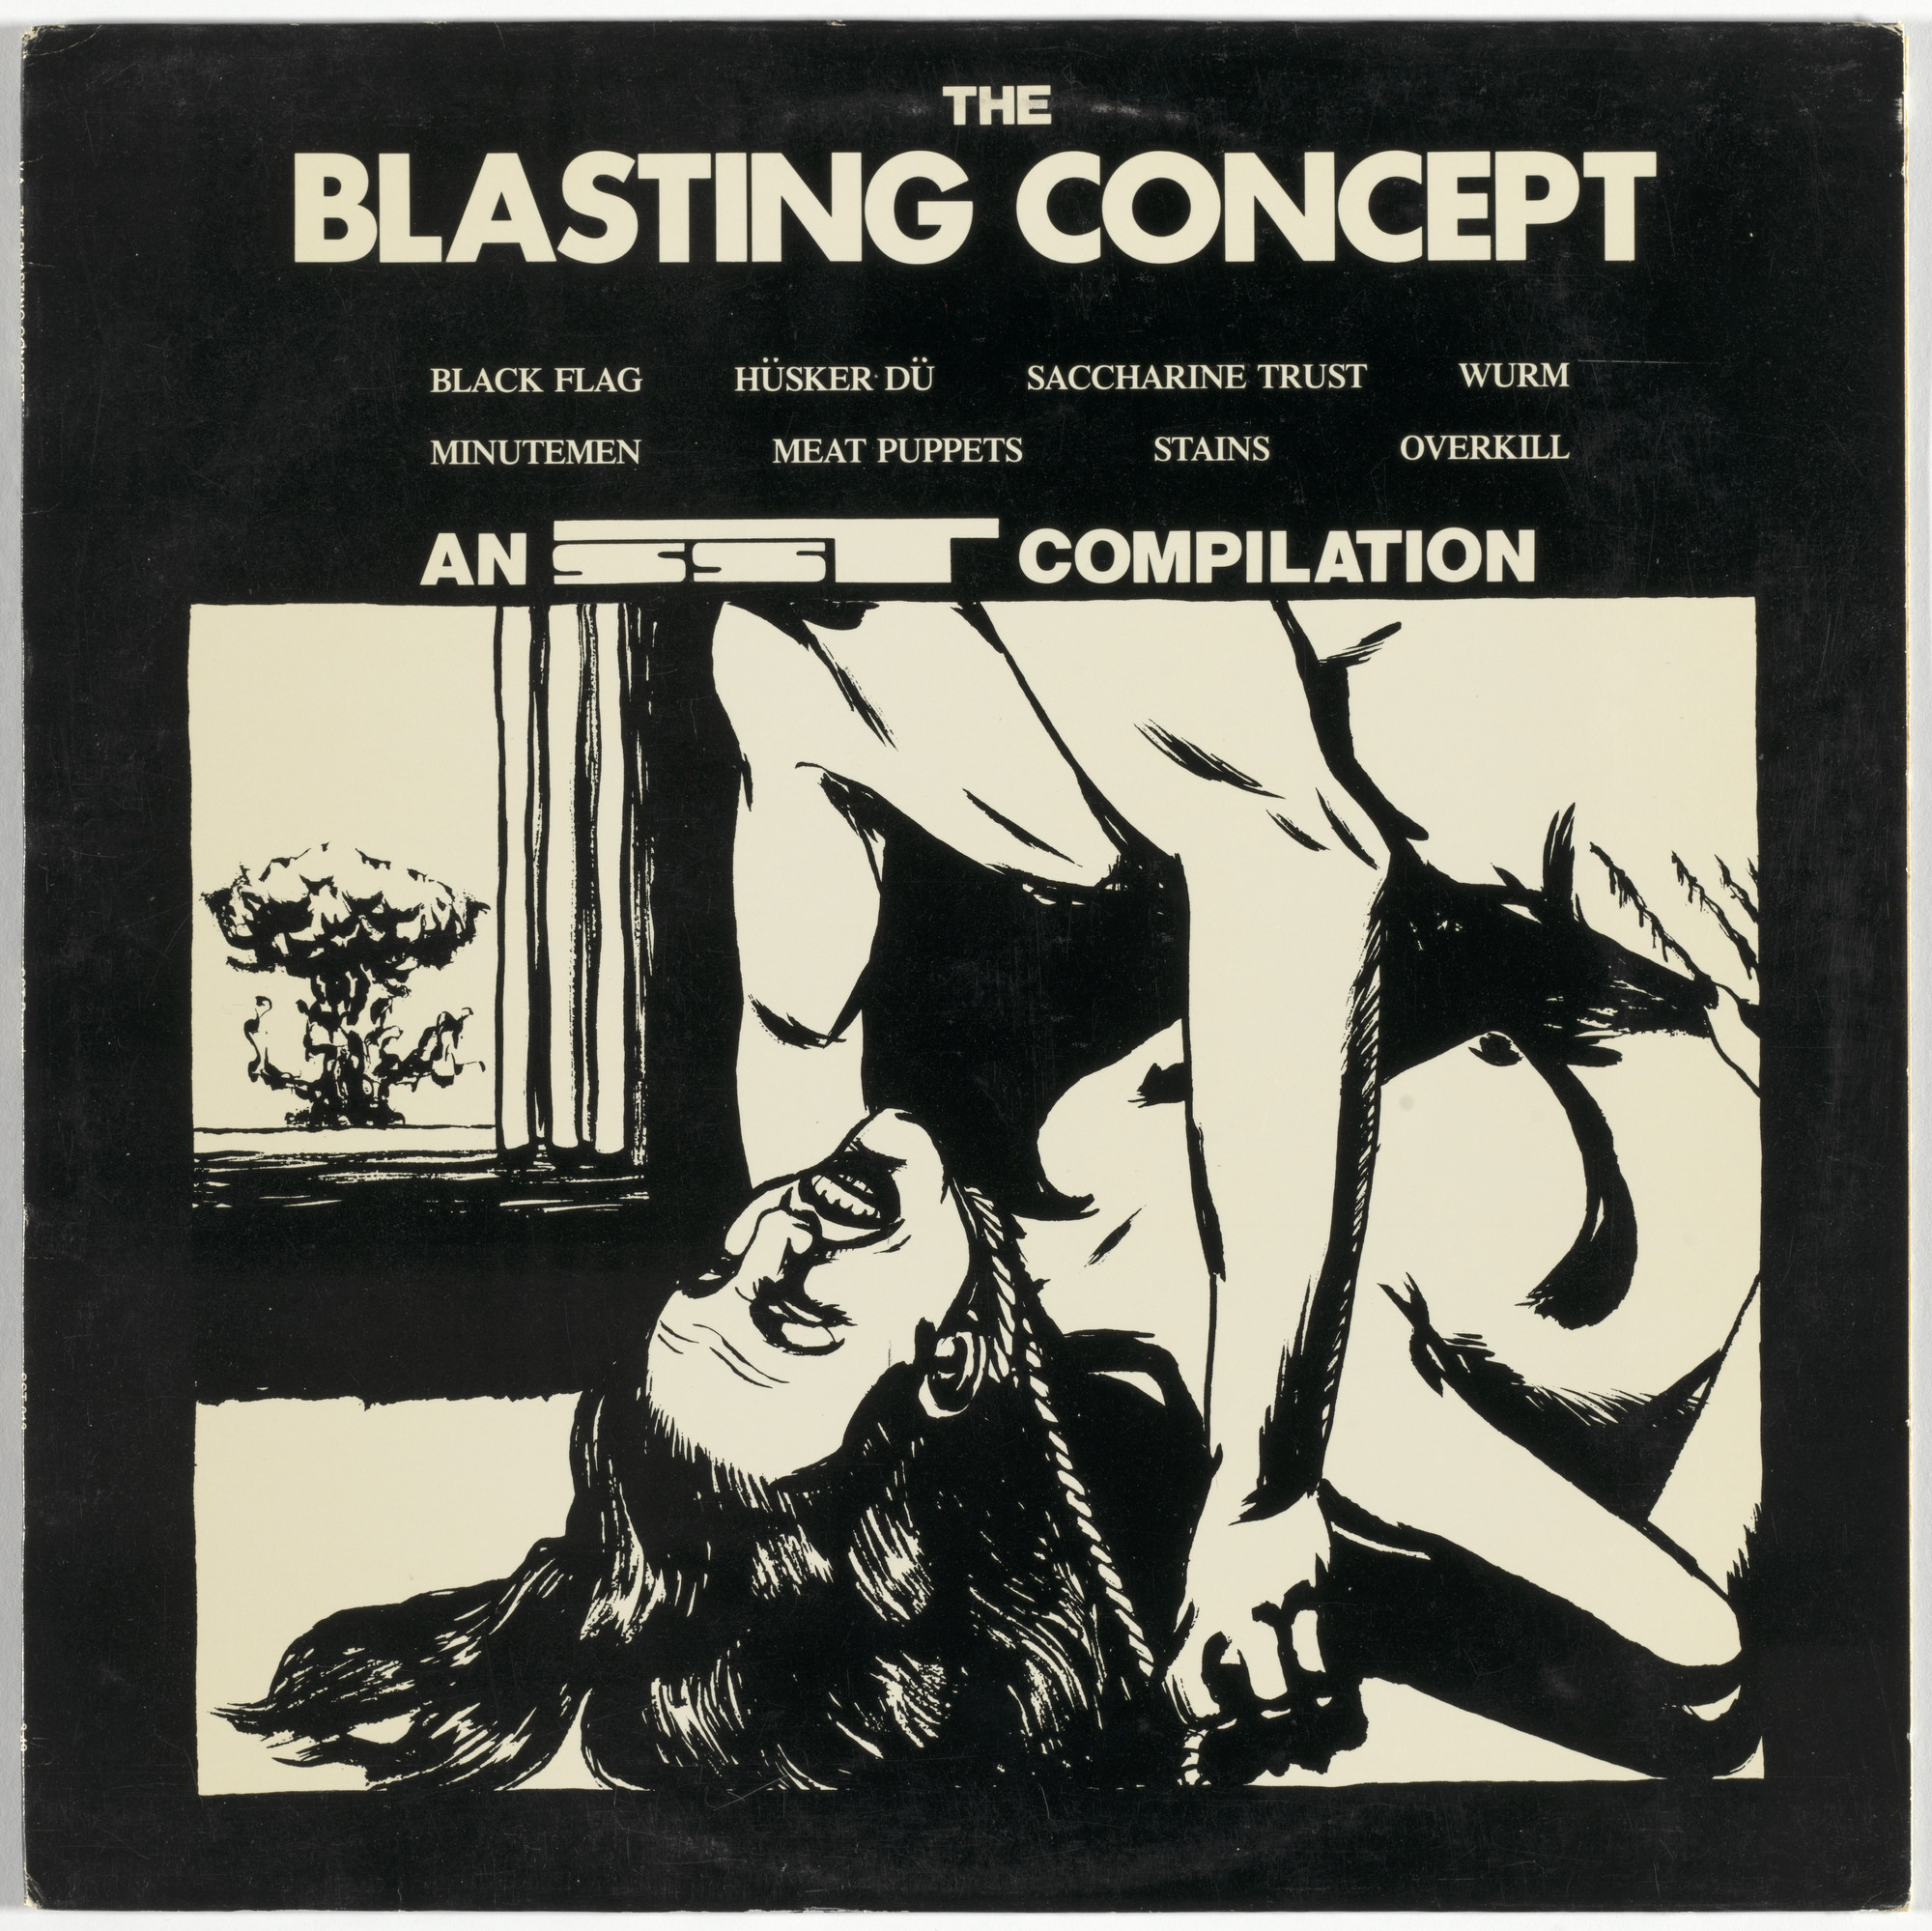 Various Artists, Minutemen, Meat Puppets, Saccharine Trust, Black Flag, Overkill, The Stains, Würm, Hüsker Dü, Raymond Pettibon. The Blasting Concept. 1983